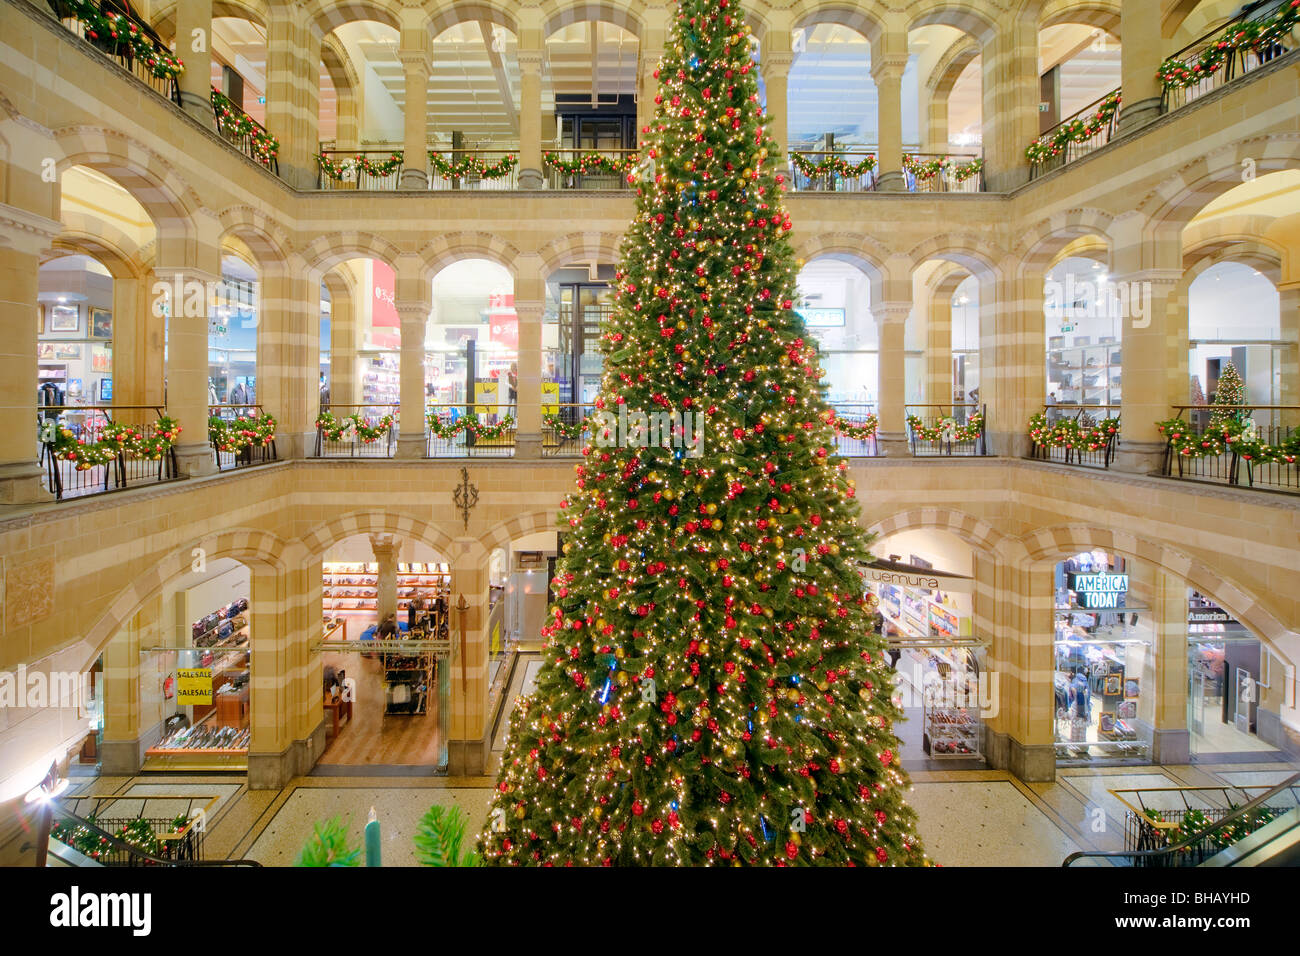 Department Store Christmas Decorations